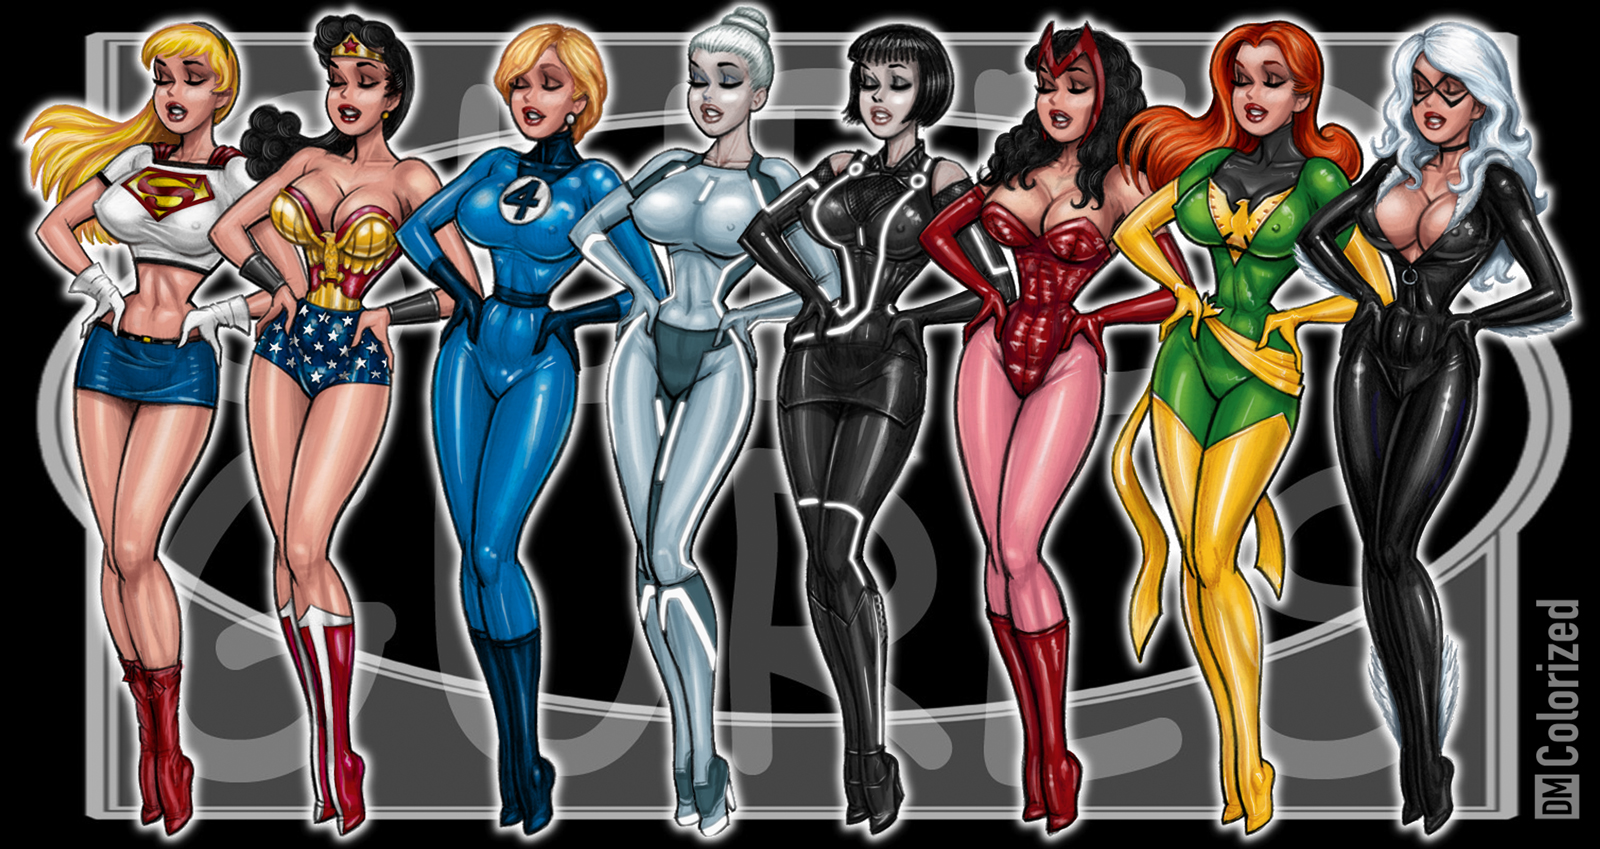 Super Gurls 2 Colorized by DanielMead